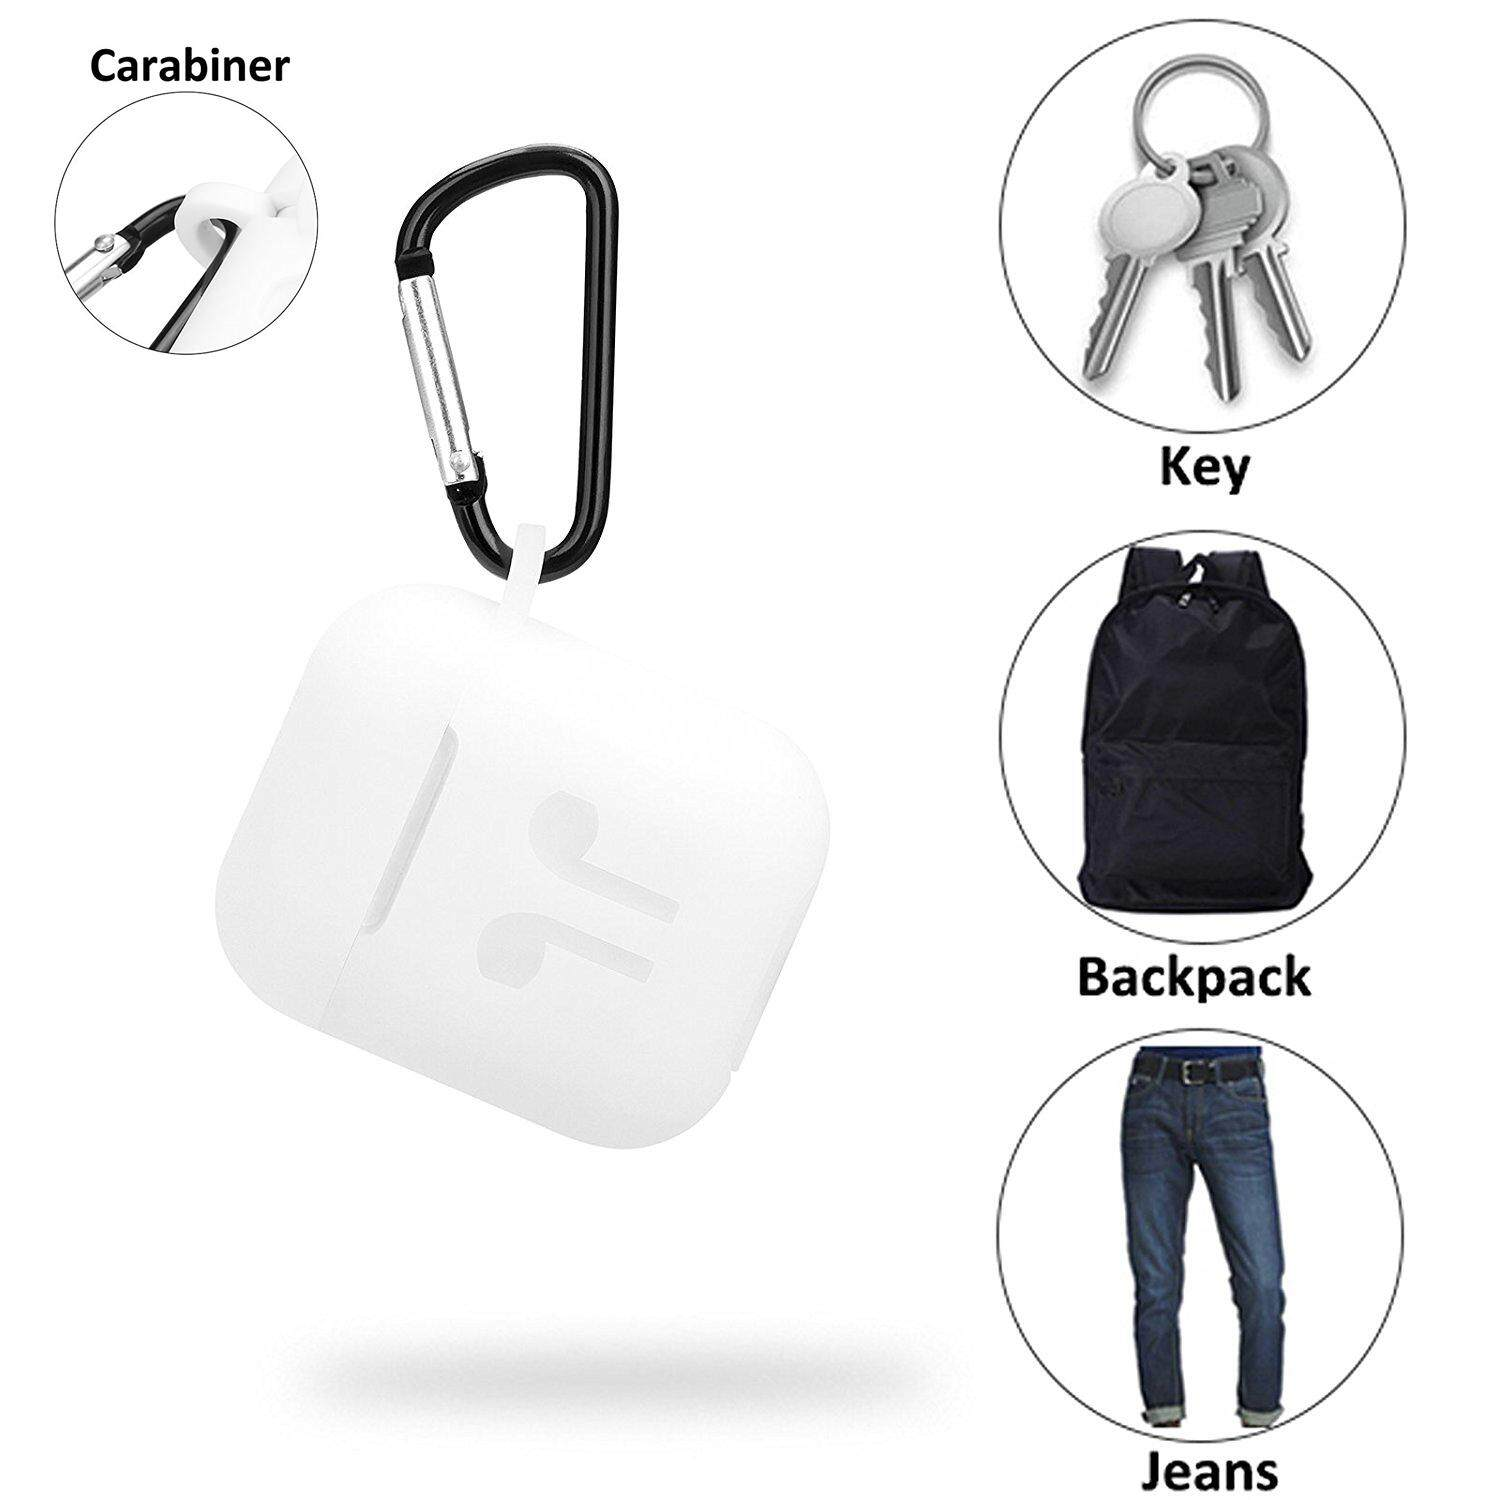 check ราคา หูฟัง SLGOL [5 Pack ] Airpods Case, Airpods Strap, Airpods Ear Hooks, Airpods Silicone Protective Cover with Earphone Sports Anti-lost Strap with Silicone Protective Earhooks, Airpods Replacement Accessories - intl ดีจริง ๆ